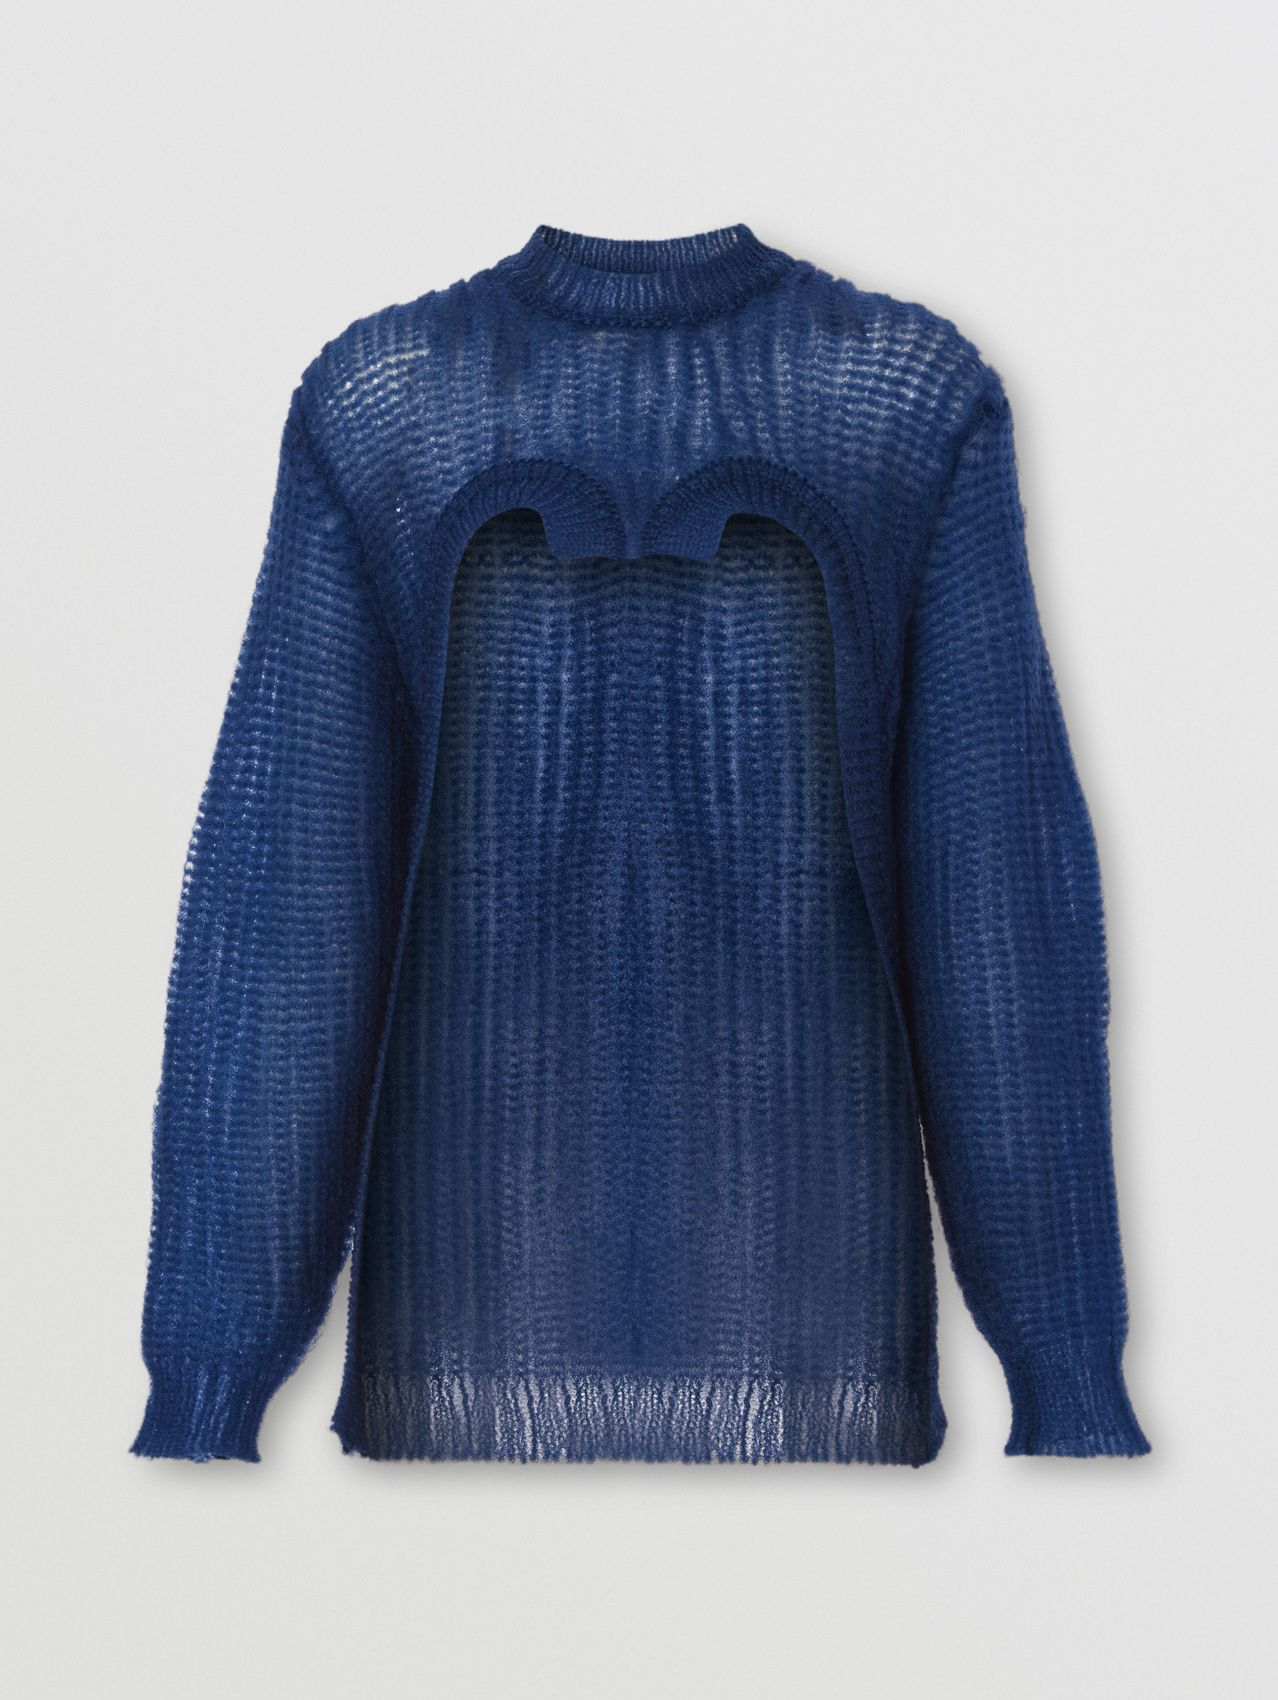 Technical Knitted Reconstructed Sweater in Warm Royal Blue